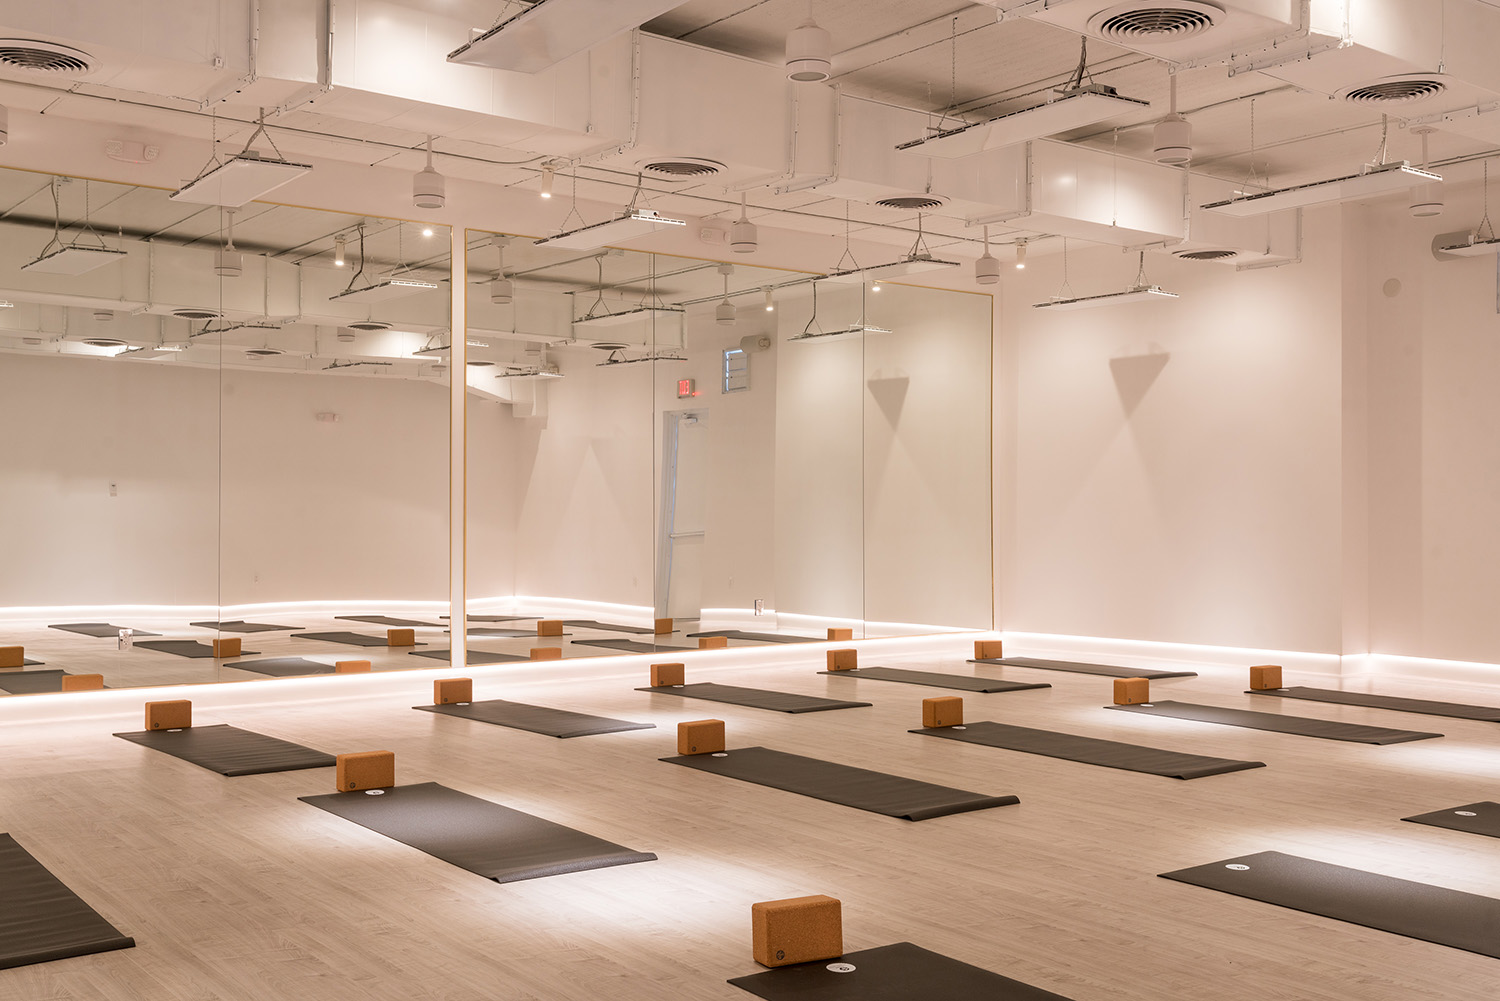 The completely renovated space includes two infrared-heated yoga and workout studios, and offers yoga classes for all levels and backgrounds.